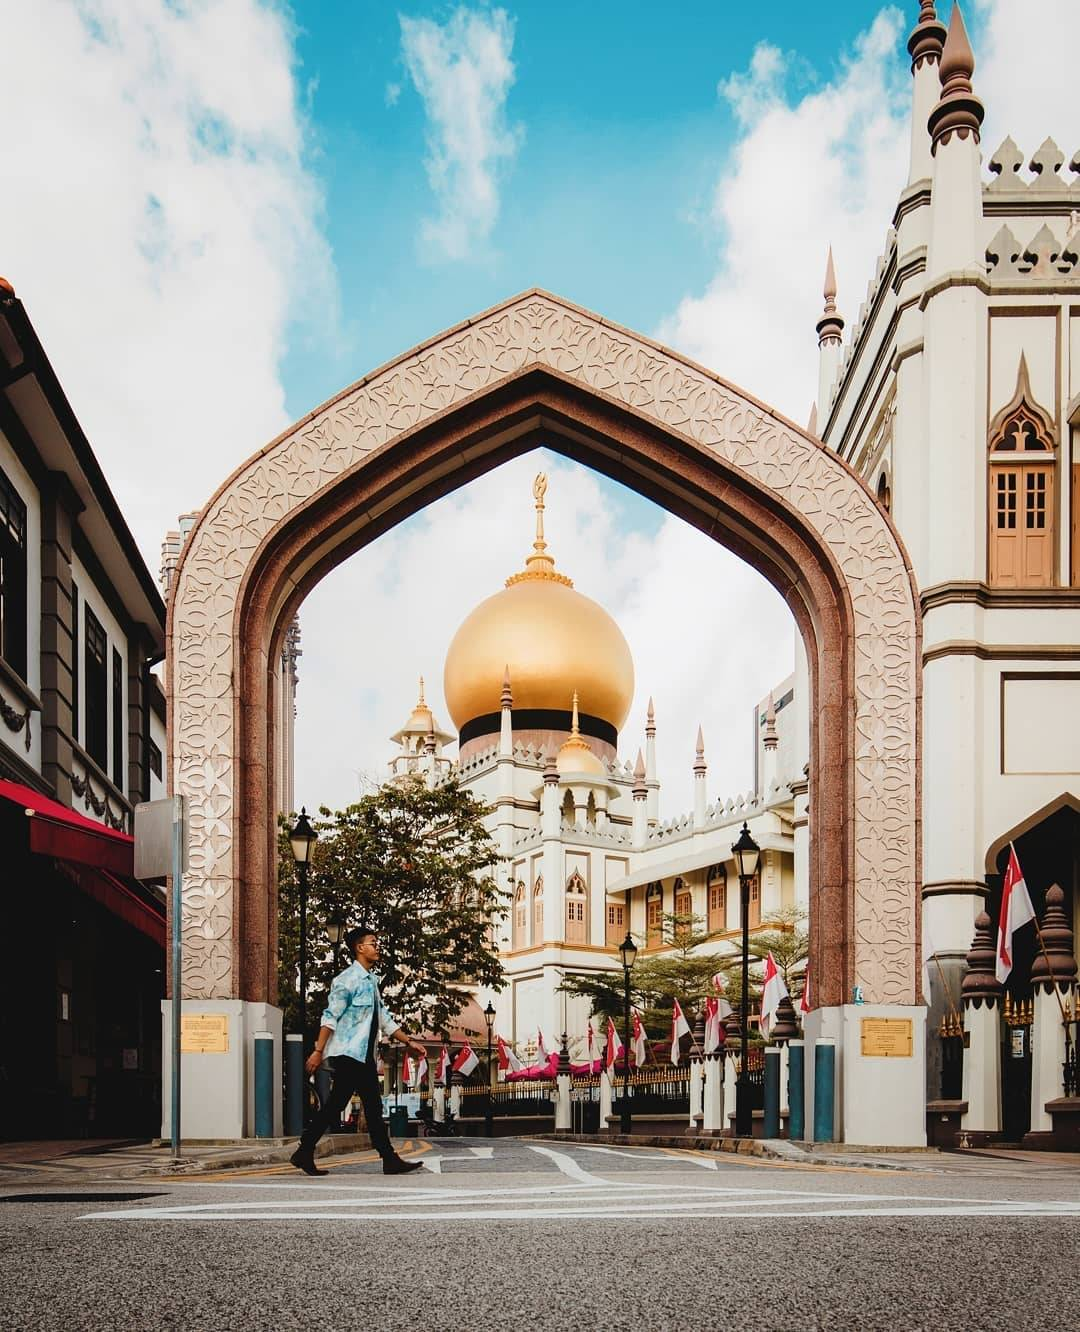 Places to go in singapore to take photos: Masjid Sultan